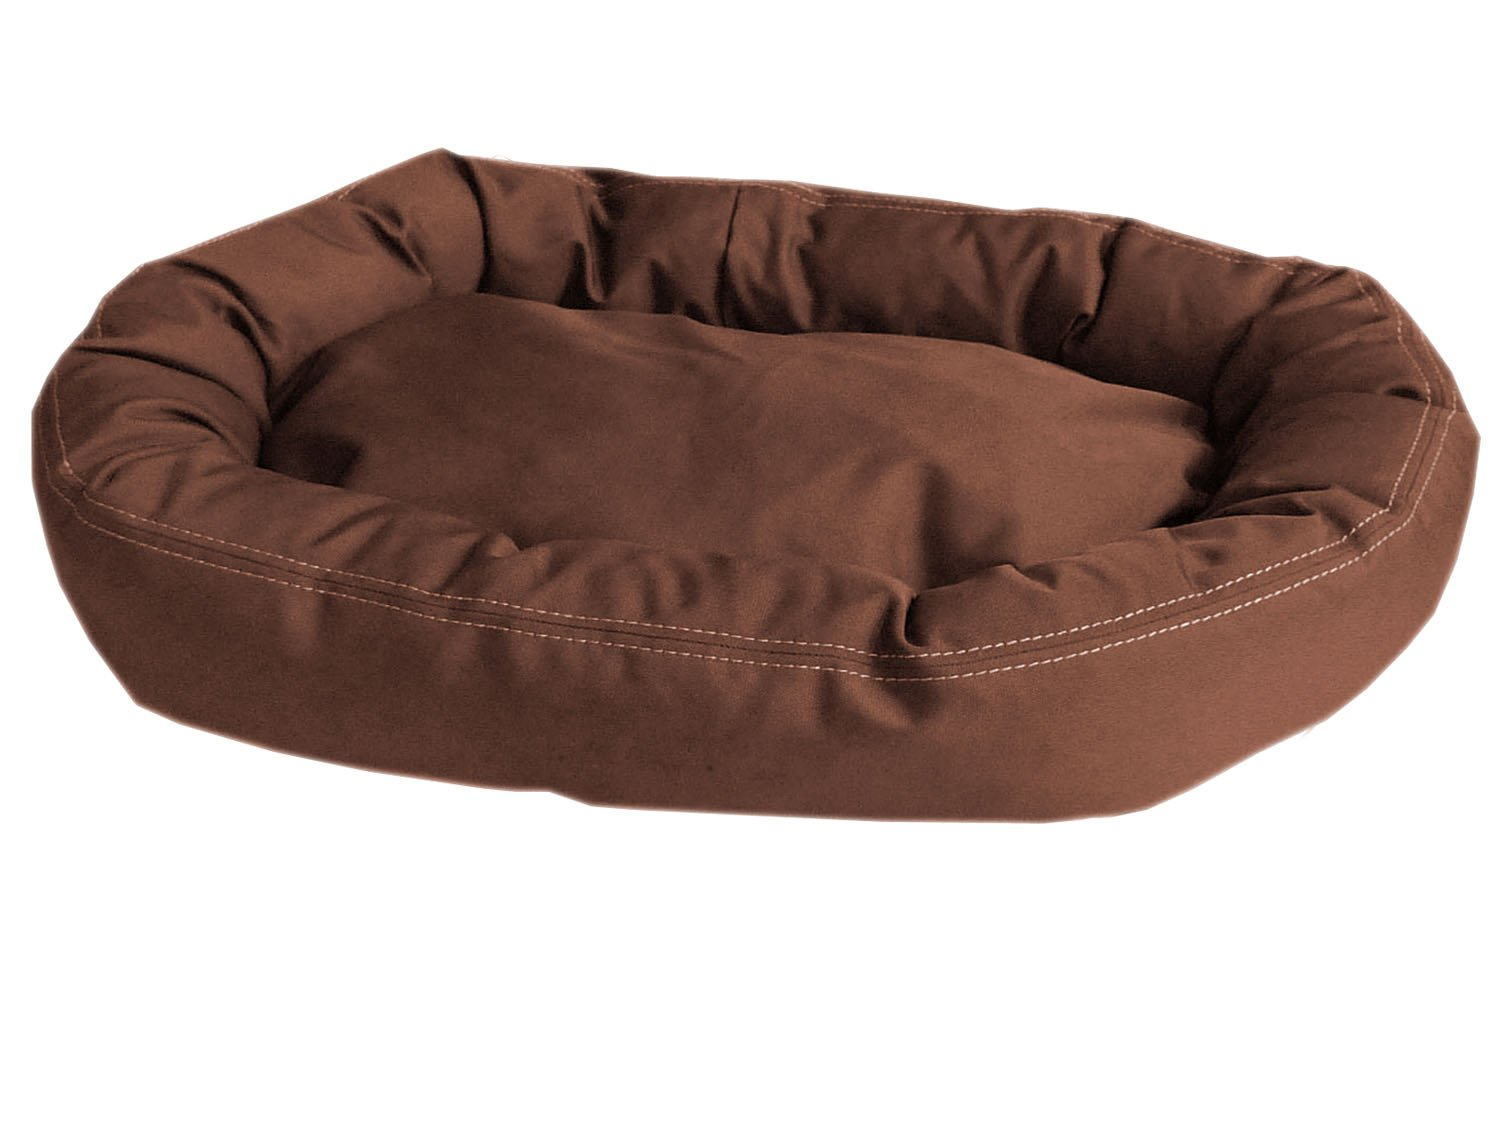 Brown 36'l x 42'w x 6'h Brown 36'l x 42'w x 6'h CPC Brutus Tuff Comfy Cup Pet Bed, 42-Inch, Chocolate